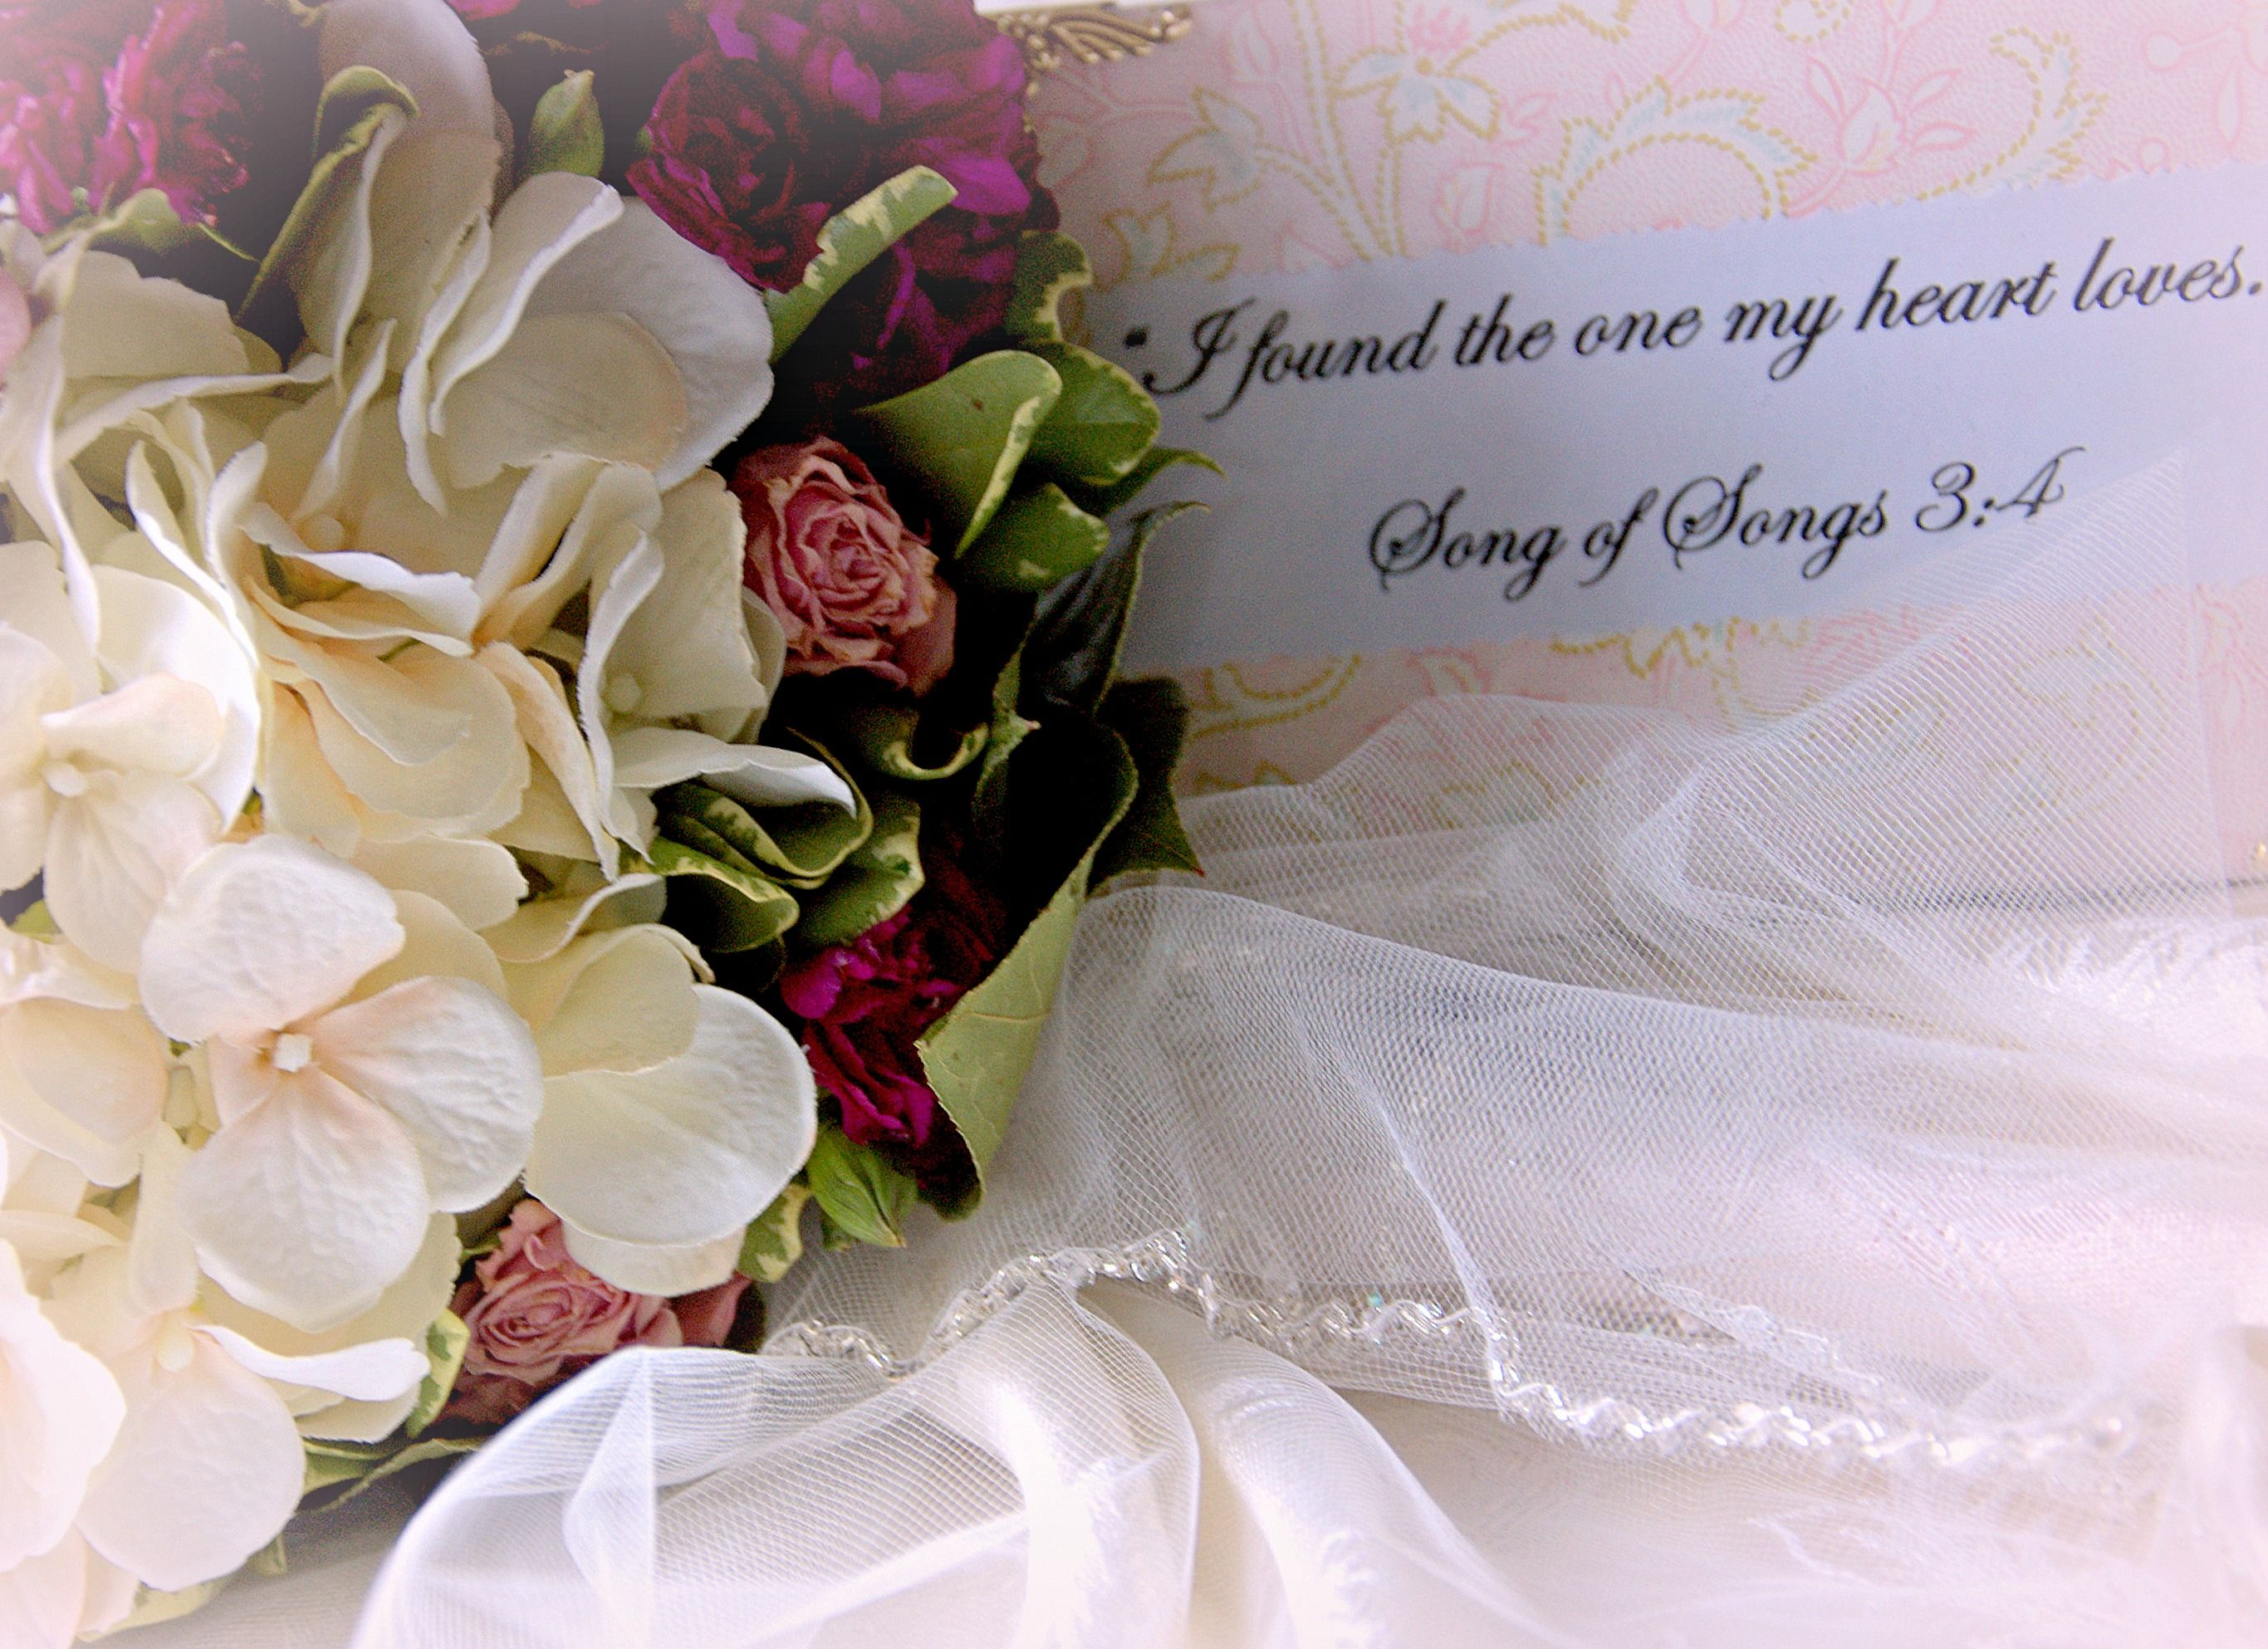 Wonderful flower bouquet quotes ideas wedding and flowers cool flower bouquet quotes photos wedding and flowers ispiration izmirmasajfo Gallery